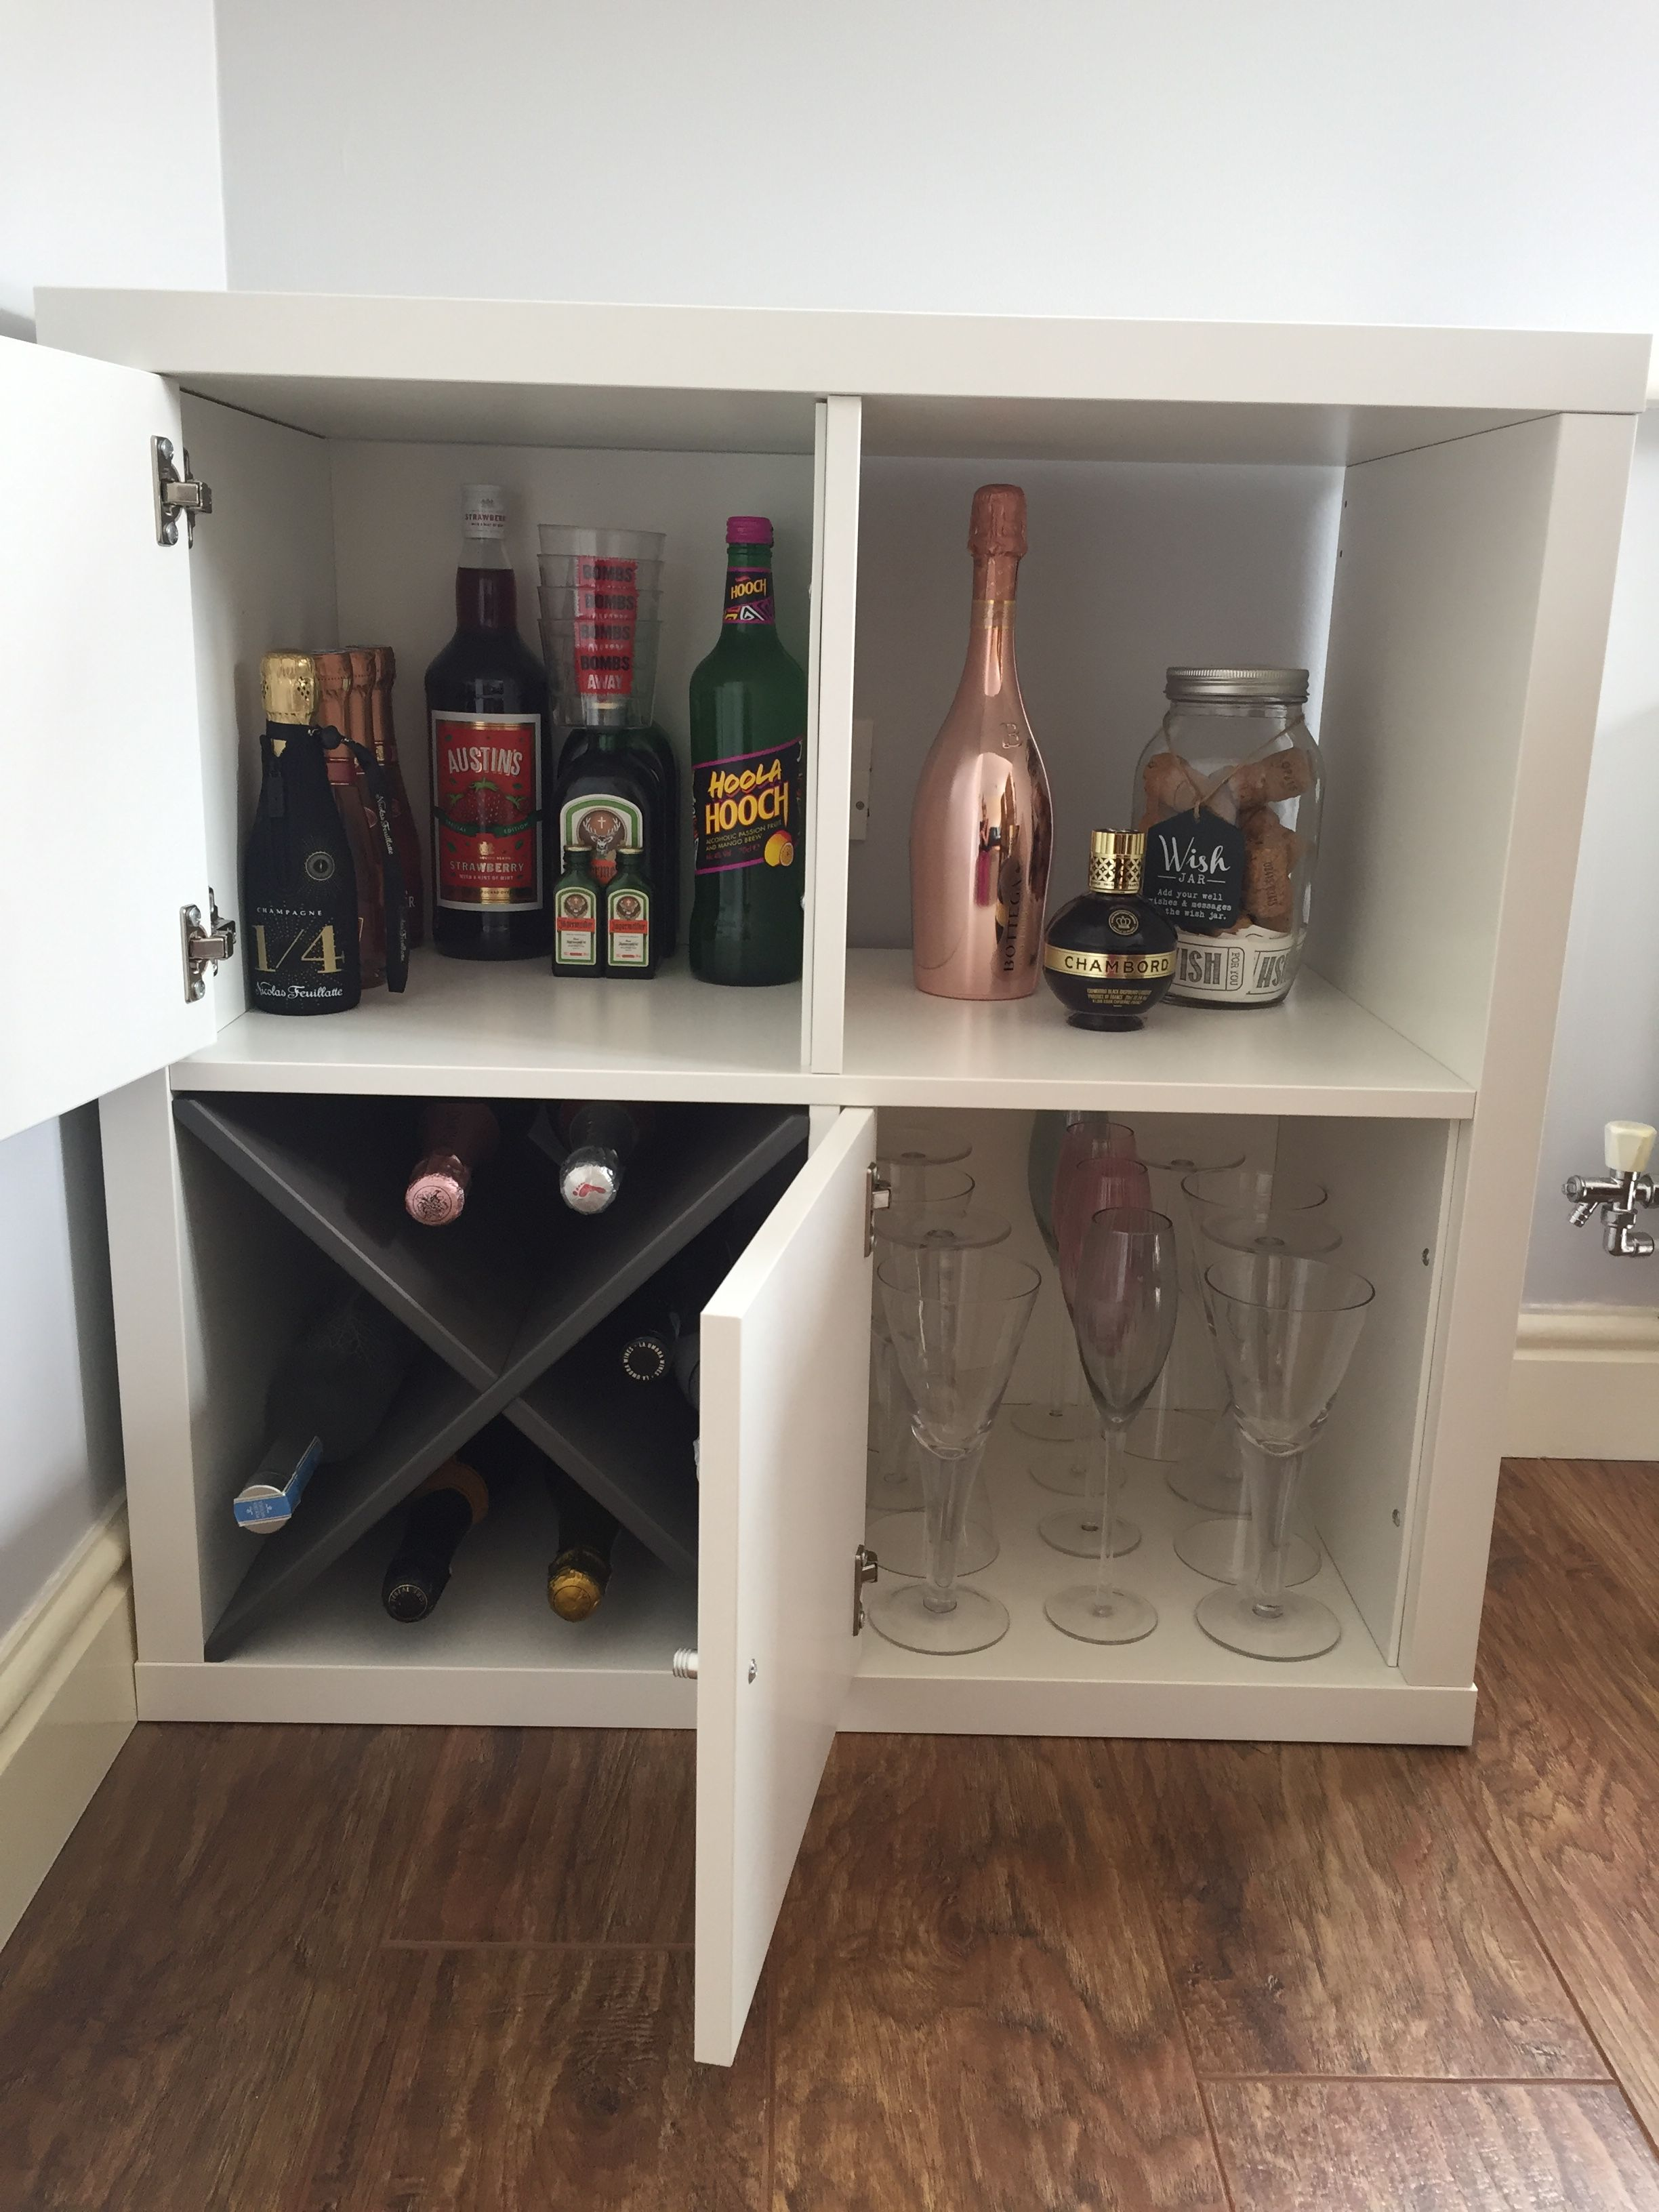 liquor ideas target bars on along together cordial furniture piquant then wooden images gallery archives drawers shelv hackers winerack bar with ikea archive genuine home to ga mutable plus exterior cabinet